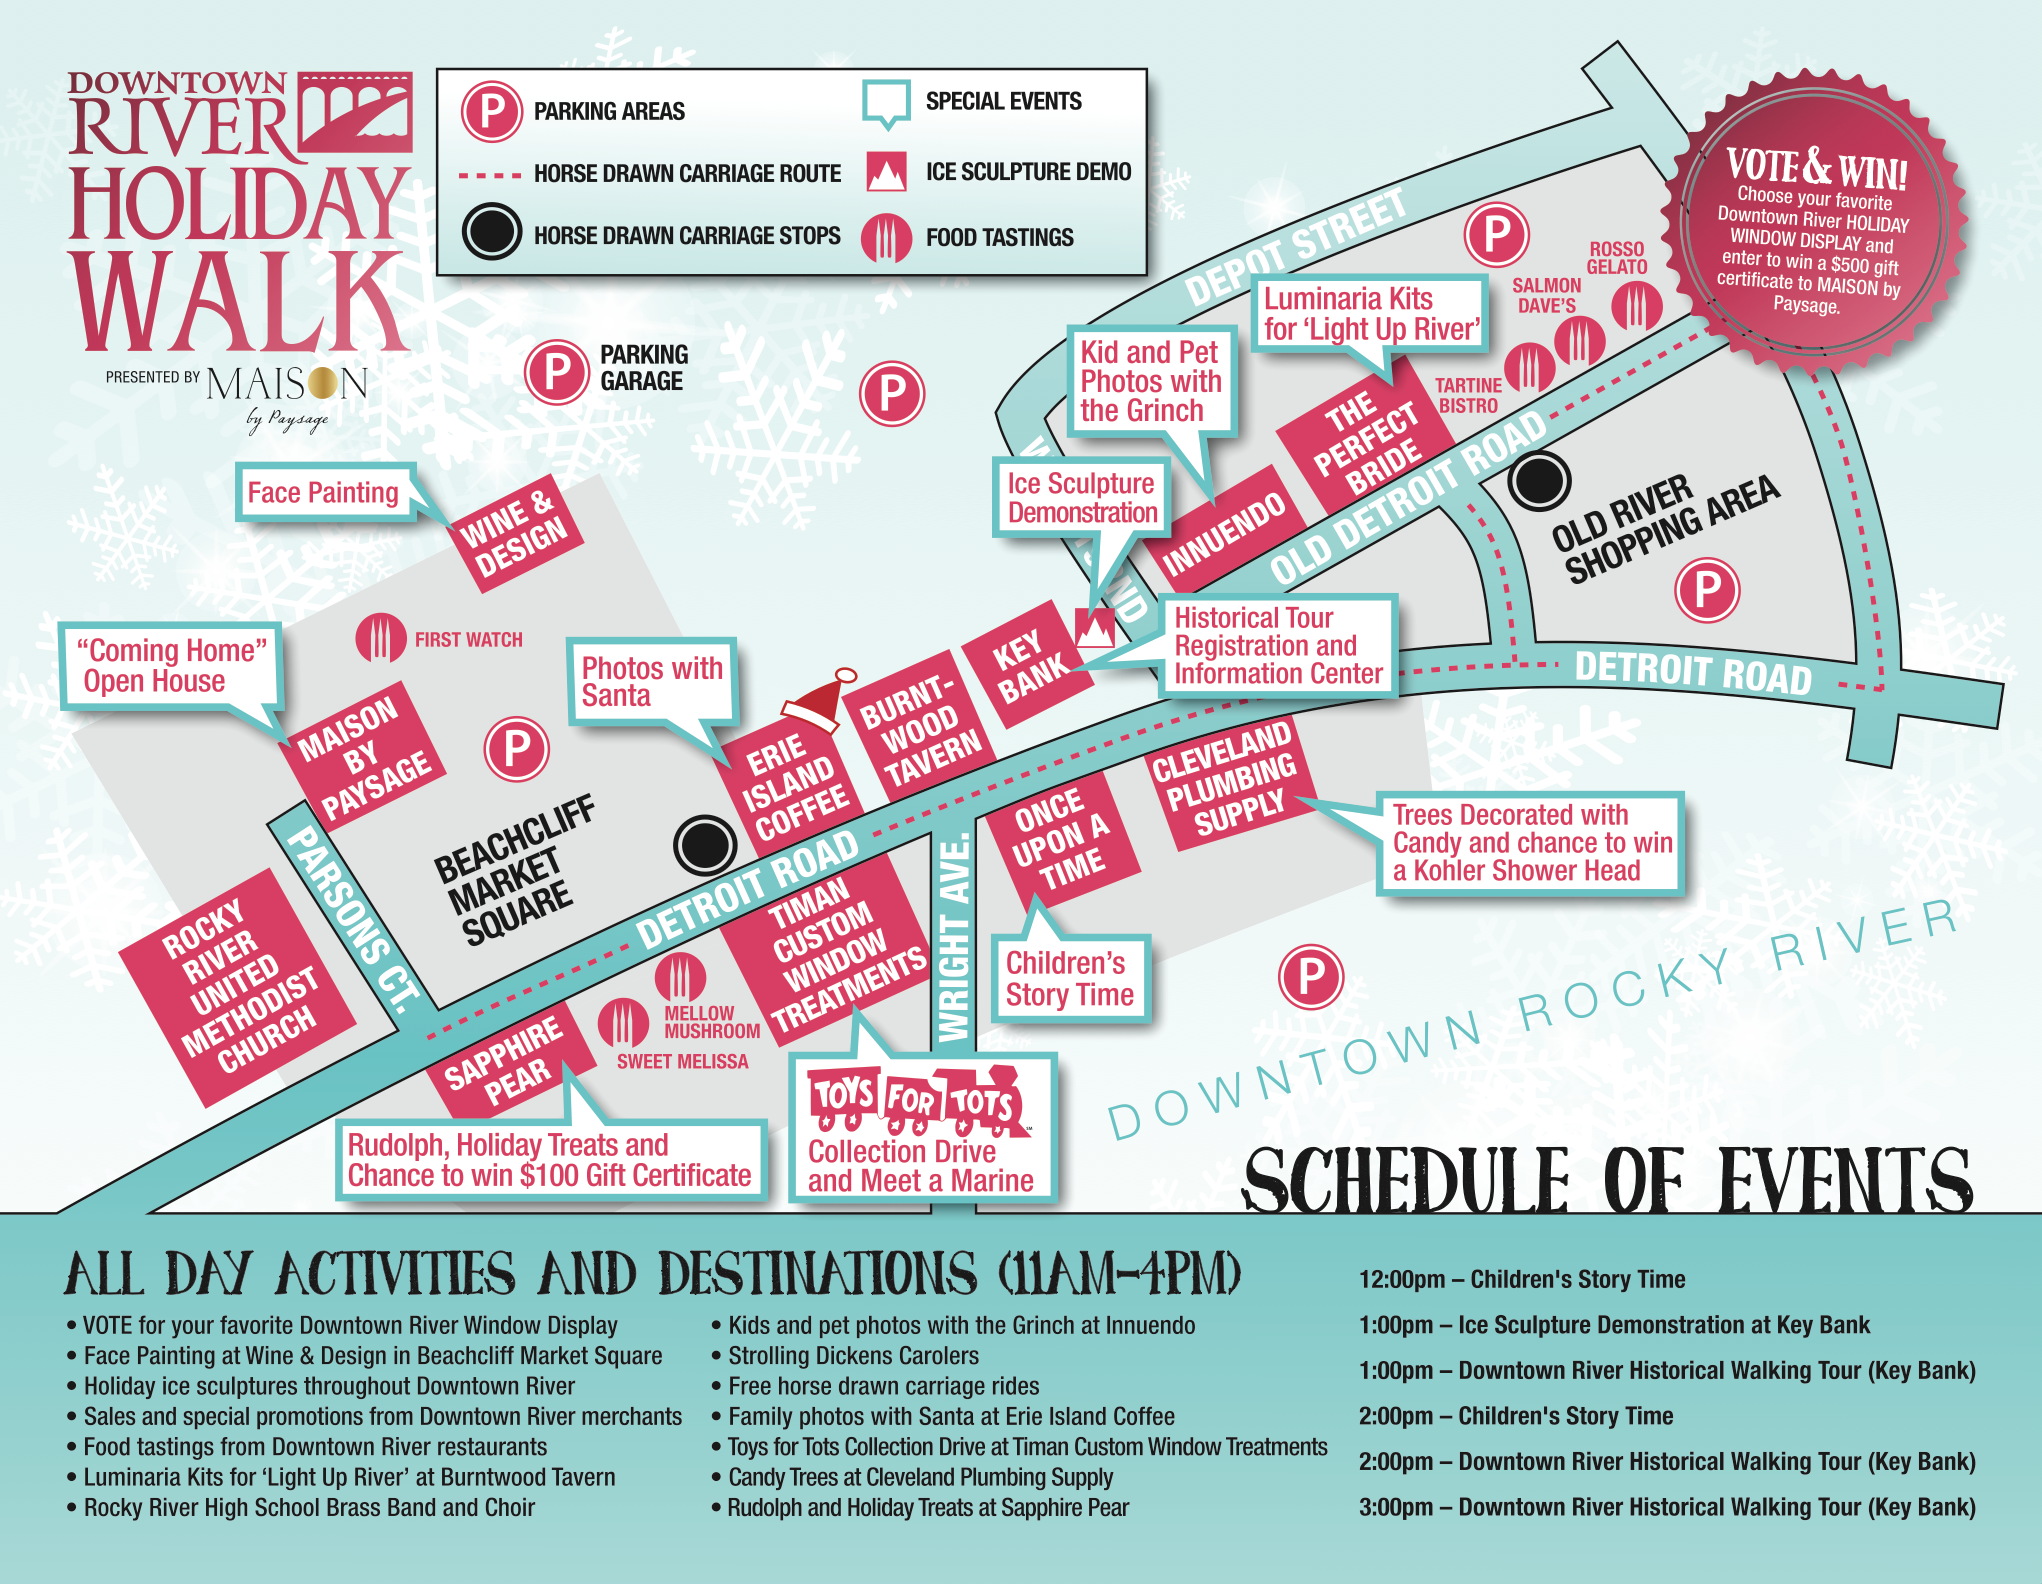 Click to enlarge the map and view events and attractions at the 2015 Holiday Walk!